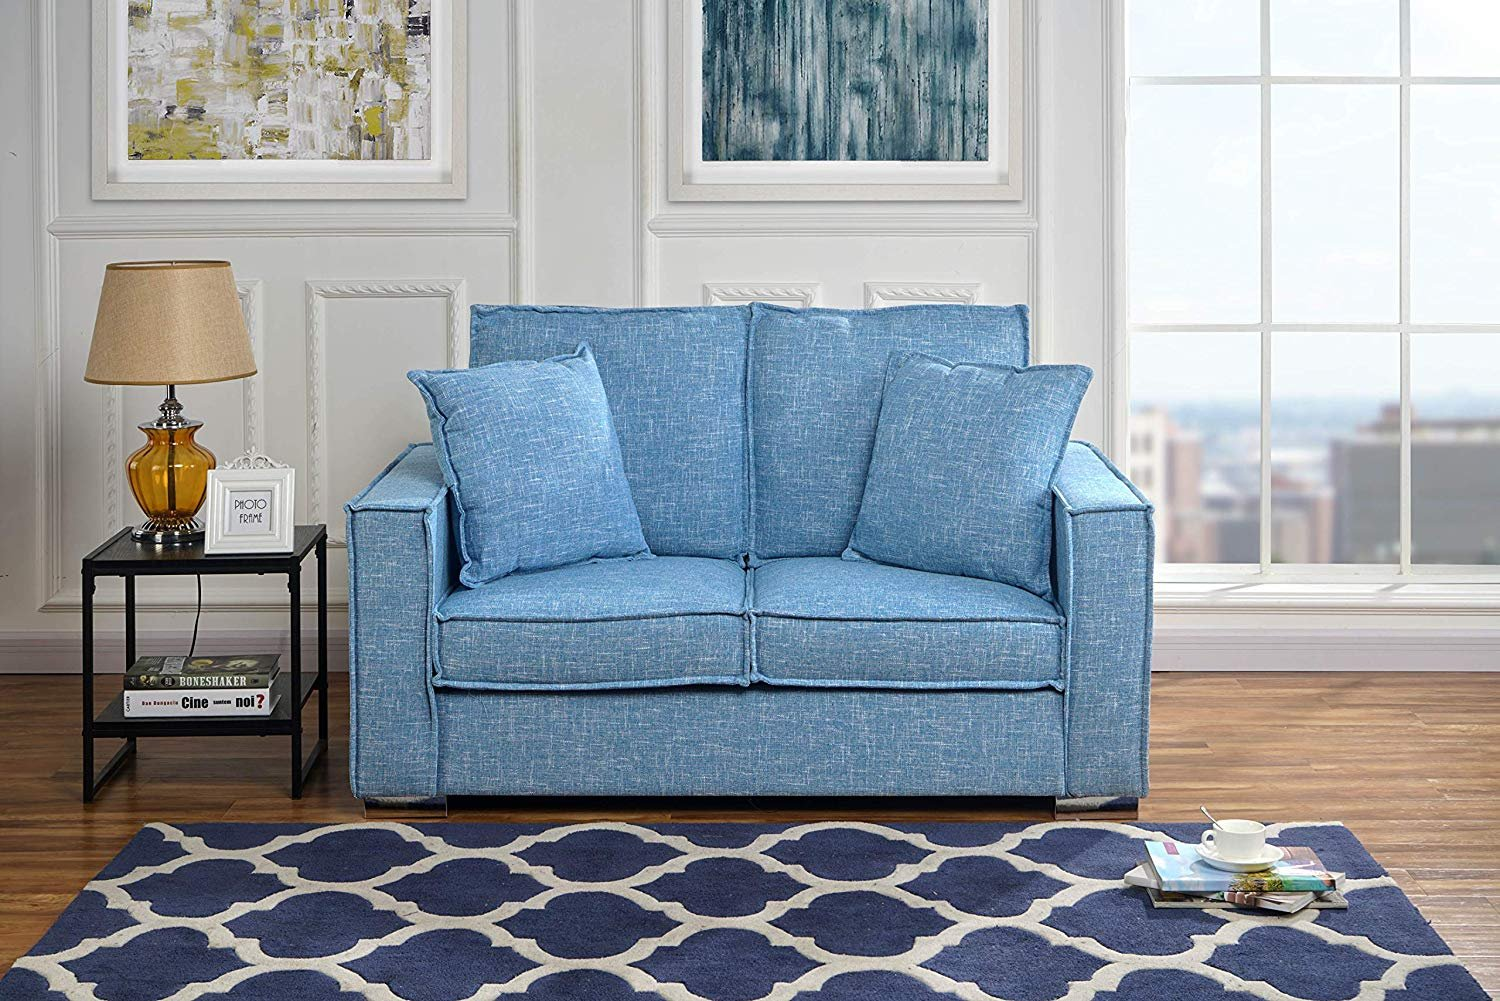 Details about Modern Loft Lounge Linen Fabric Sofa, Small Space Loveseat  Couch (Light Blue)